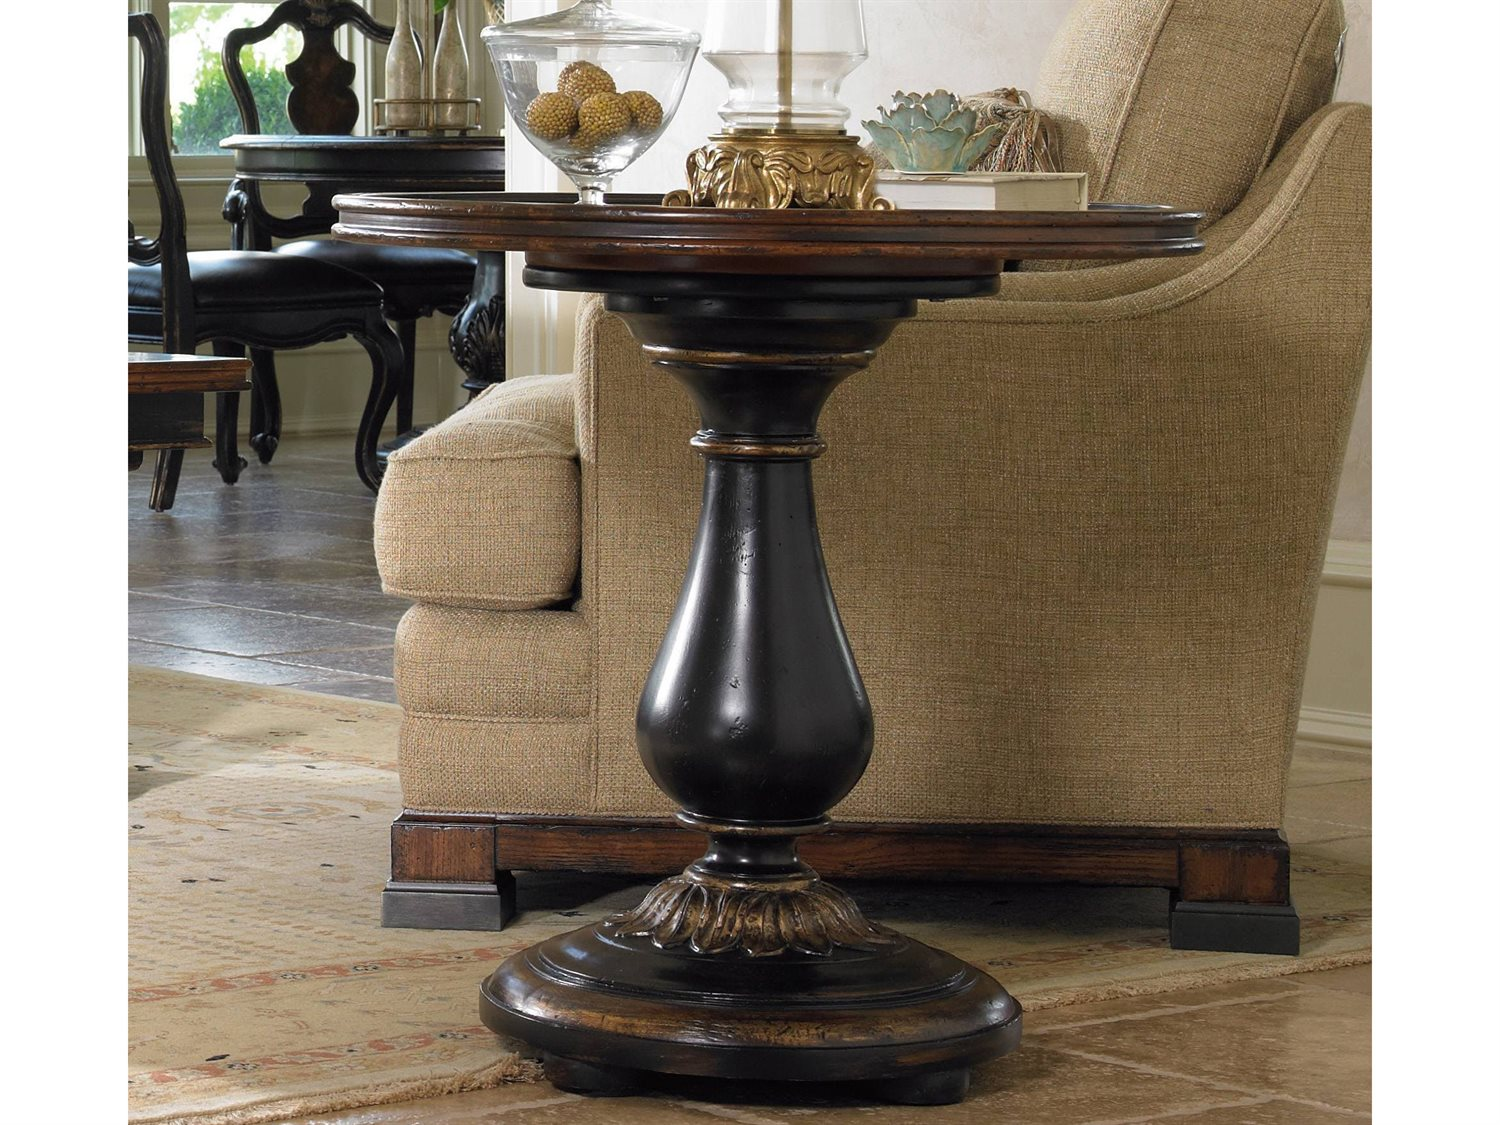 Furniture Grandover Black With Gold 28 Wide Round Pedestal End Table